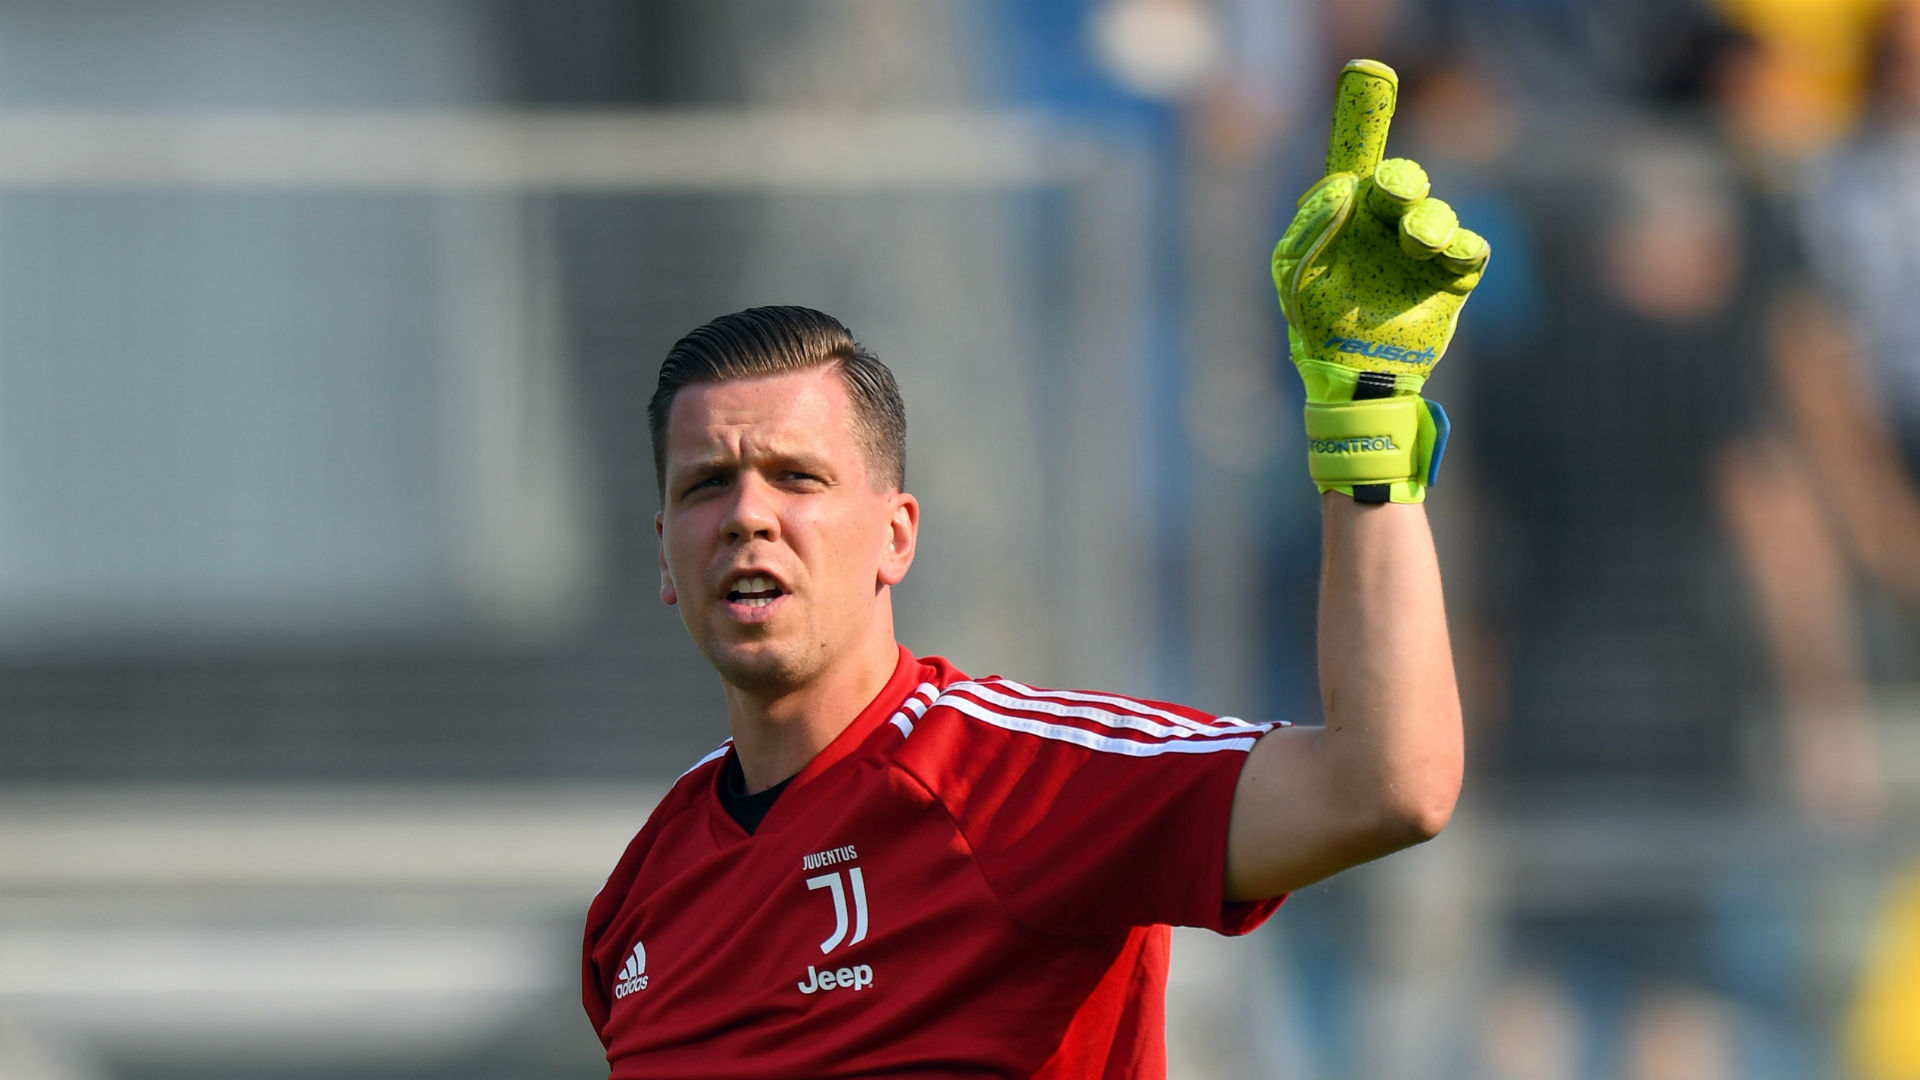 Szczesny: Juventus showed how hungry for trophies we are with Supercoppa Italiana win